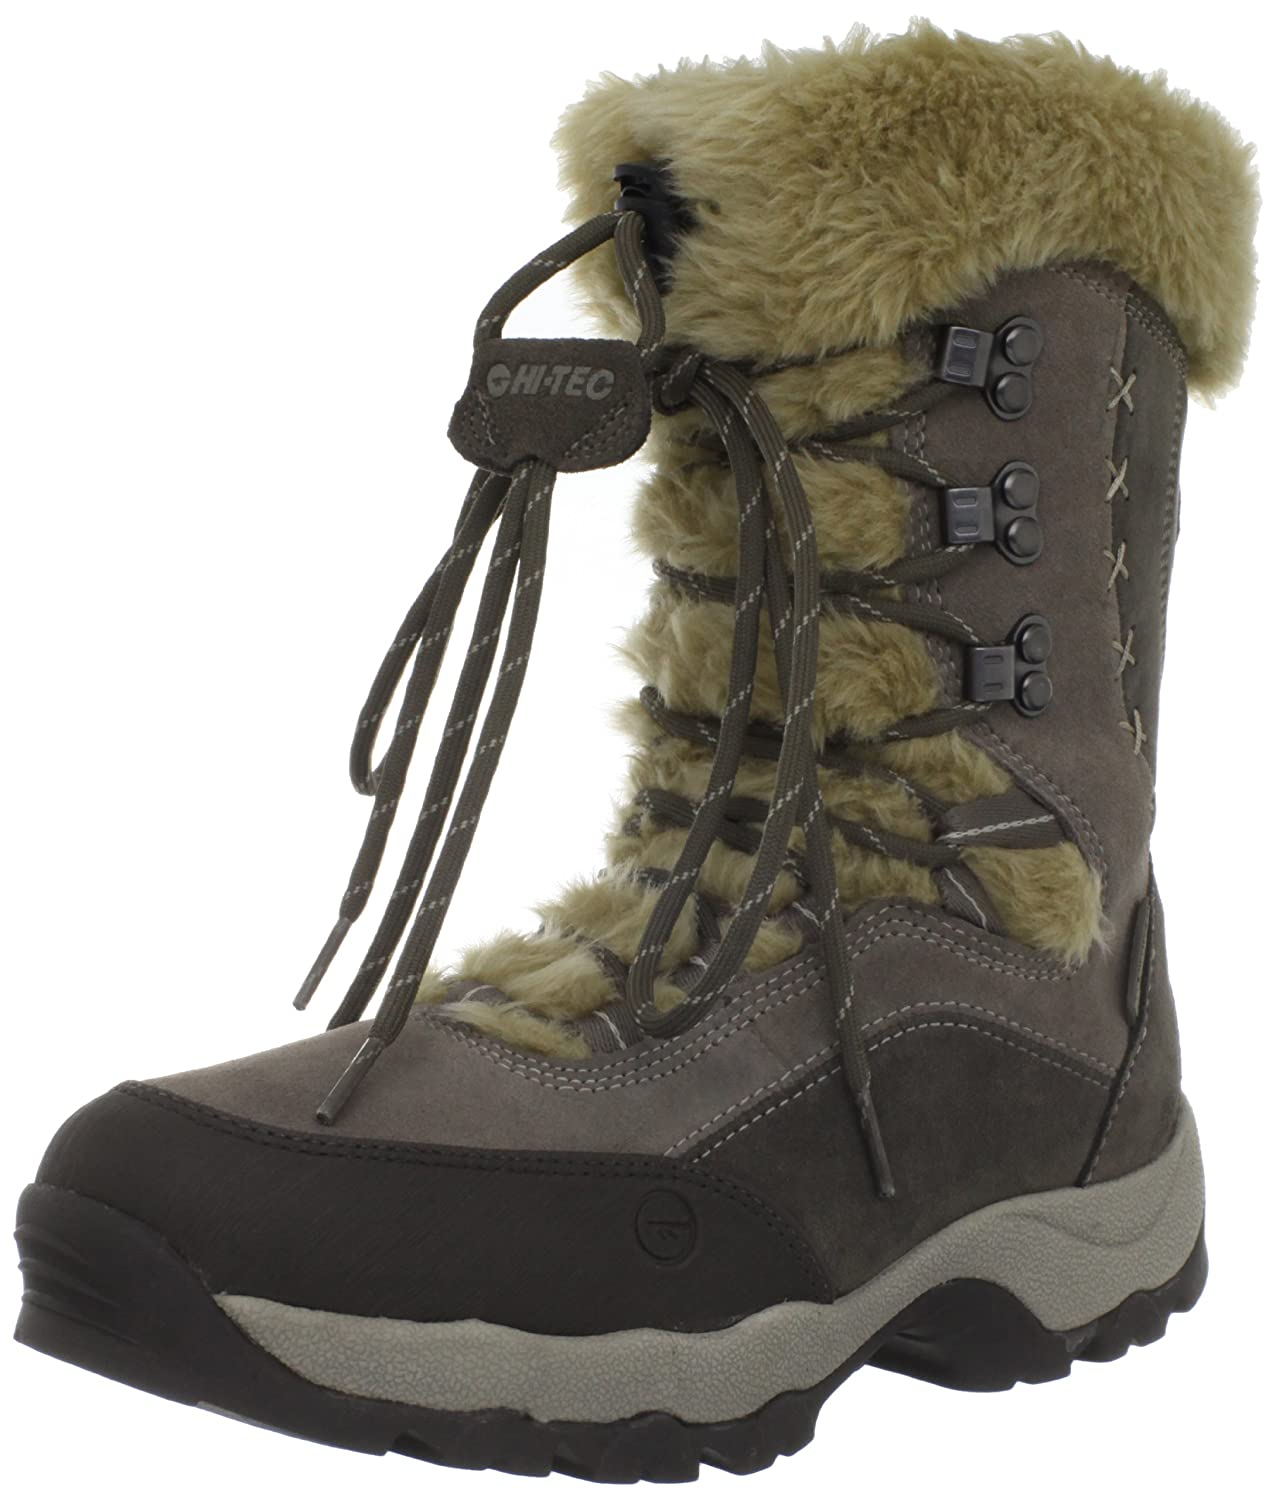 Hi-Tec Women's St Moritz 200 Insulated Boot B0071N0DG0 11 B(M) US|Olive/Taupe/Stone